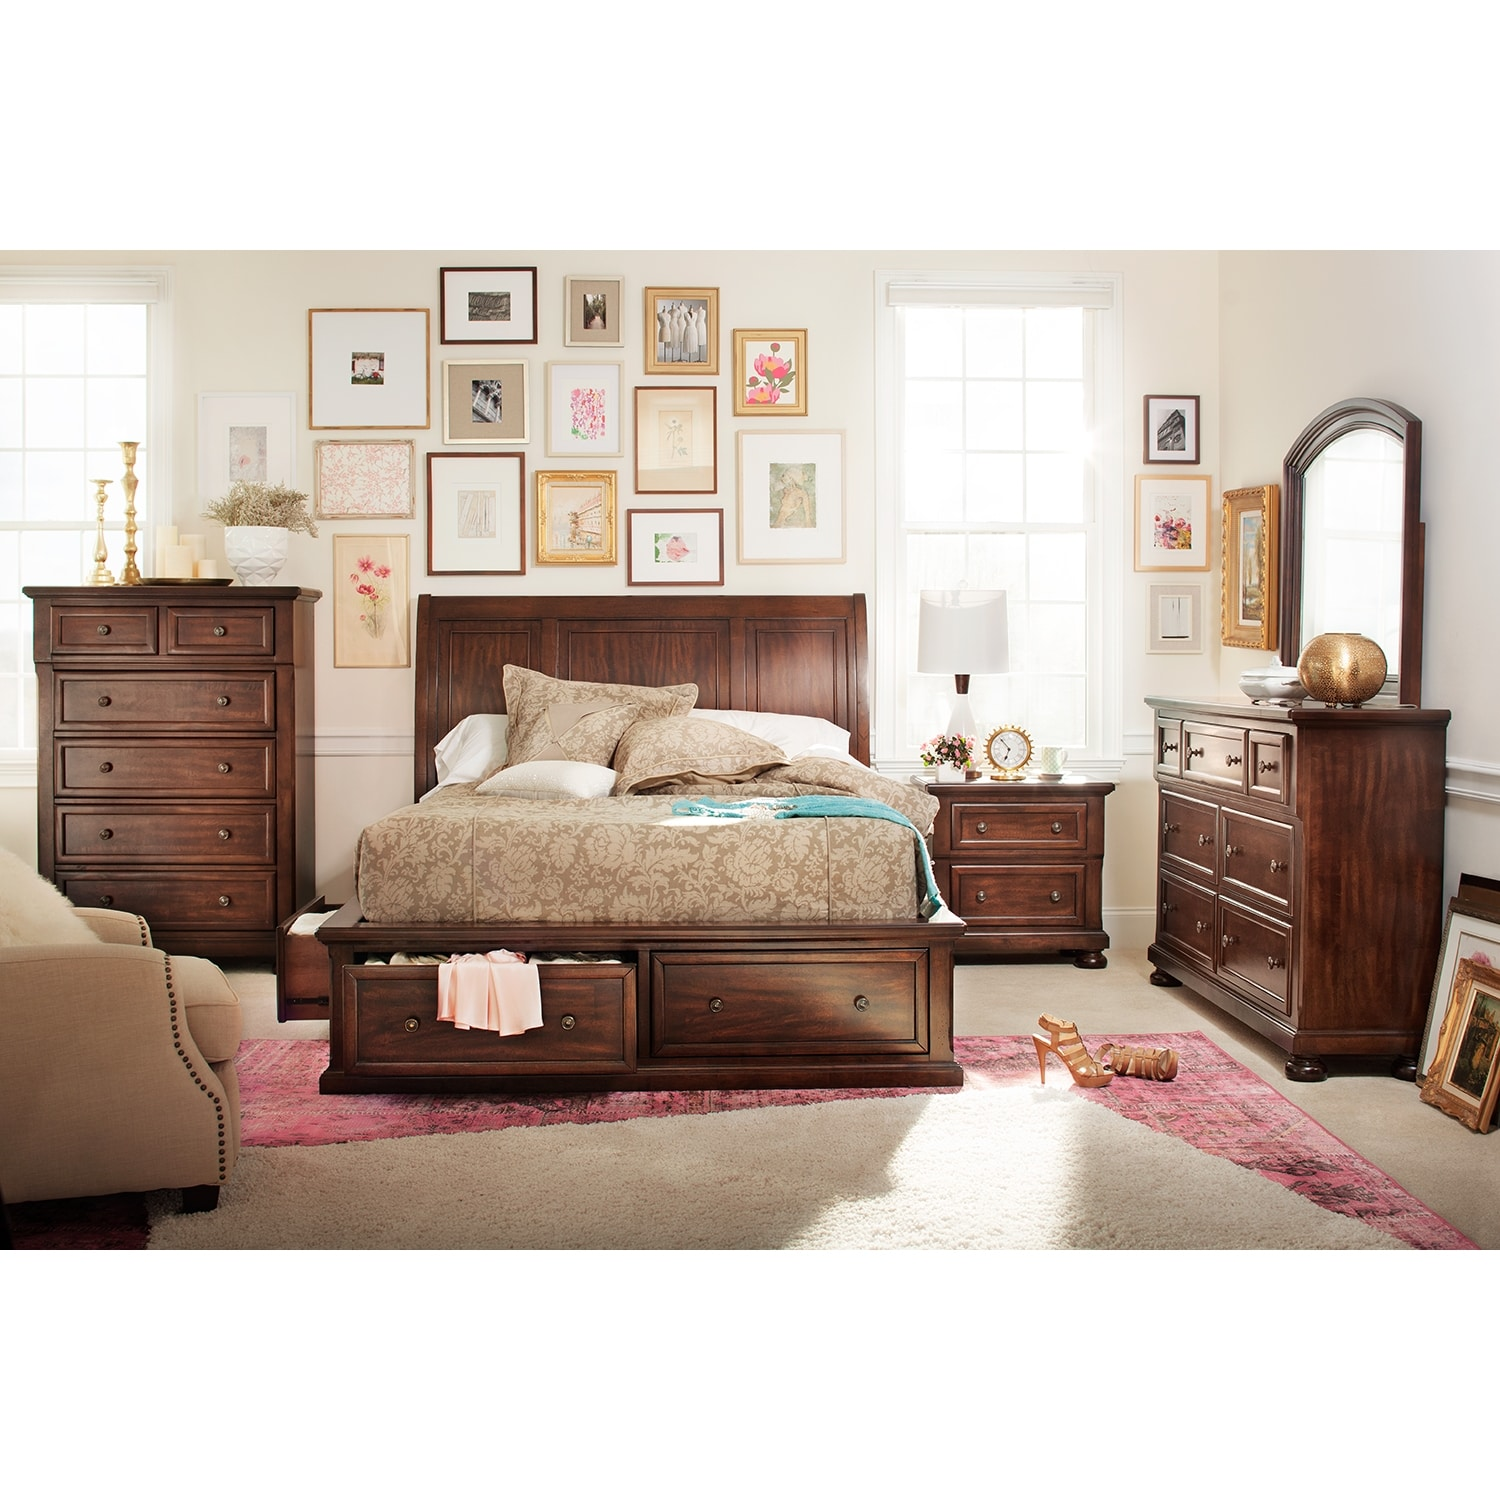 Hanover 7 piece queen storage bedroom set cherry value for Bedroom furniture queen storage bed